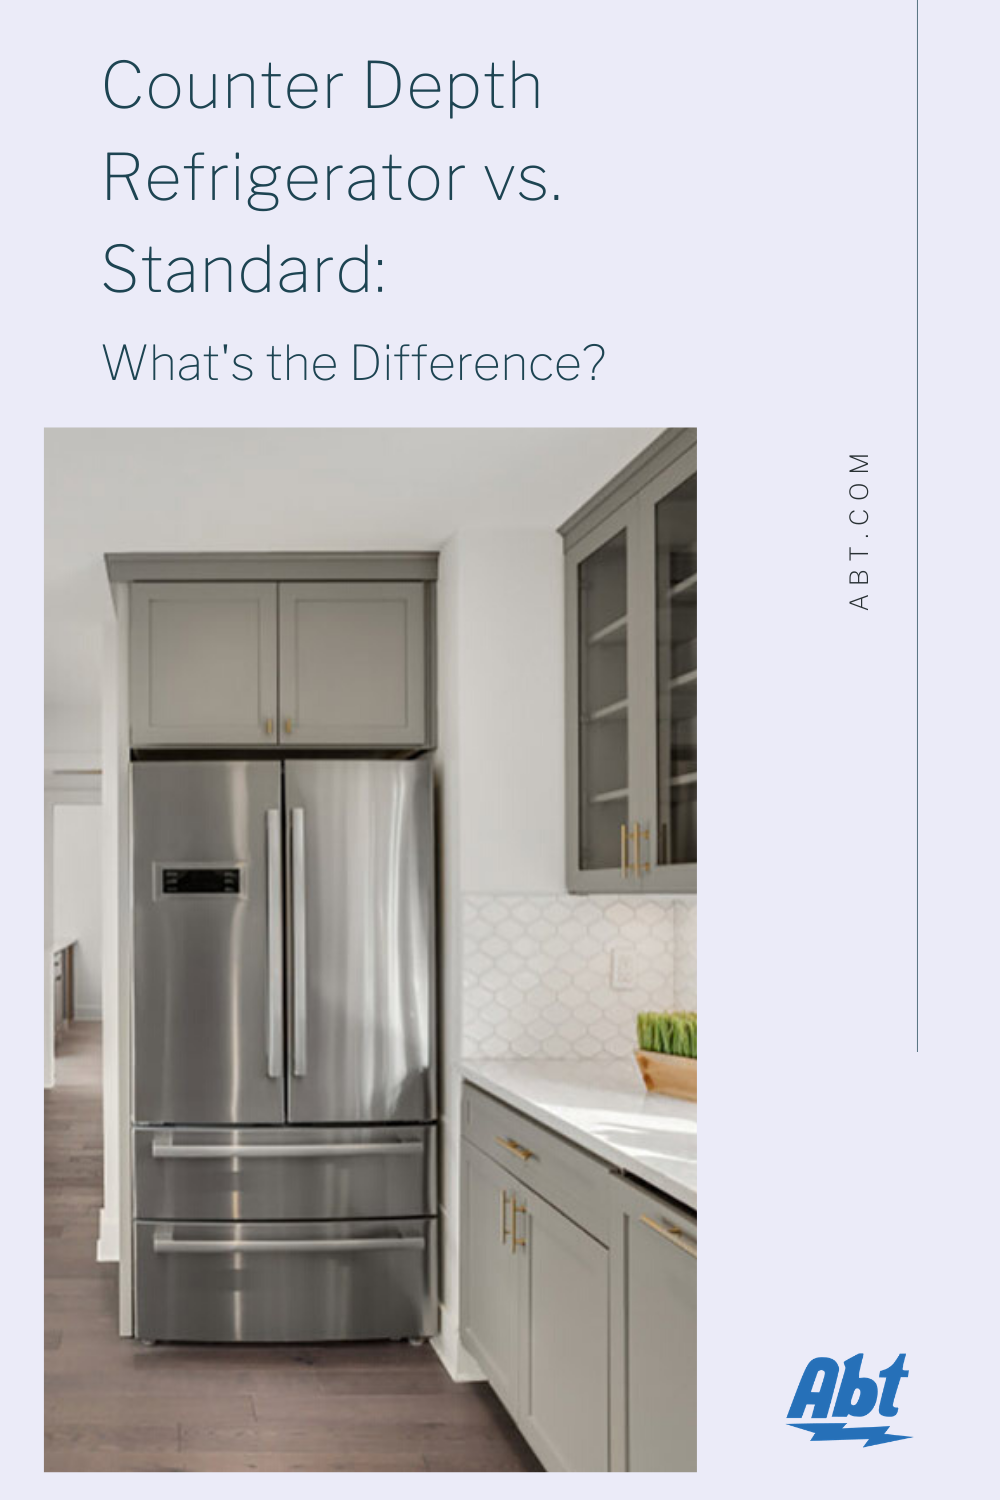 Counter Depth Refrigerator Vs Standard What S The Difference In 2020 Counter Depth Refrigerator Latest Kitchen Trends Counter Depth